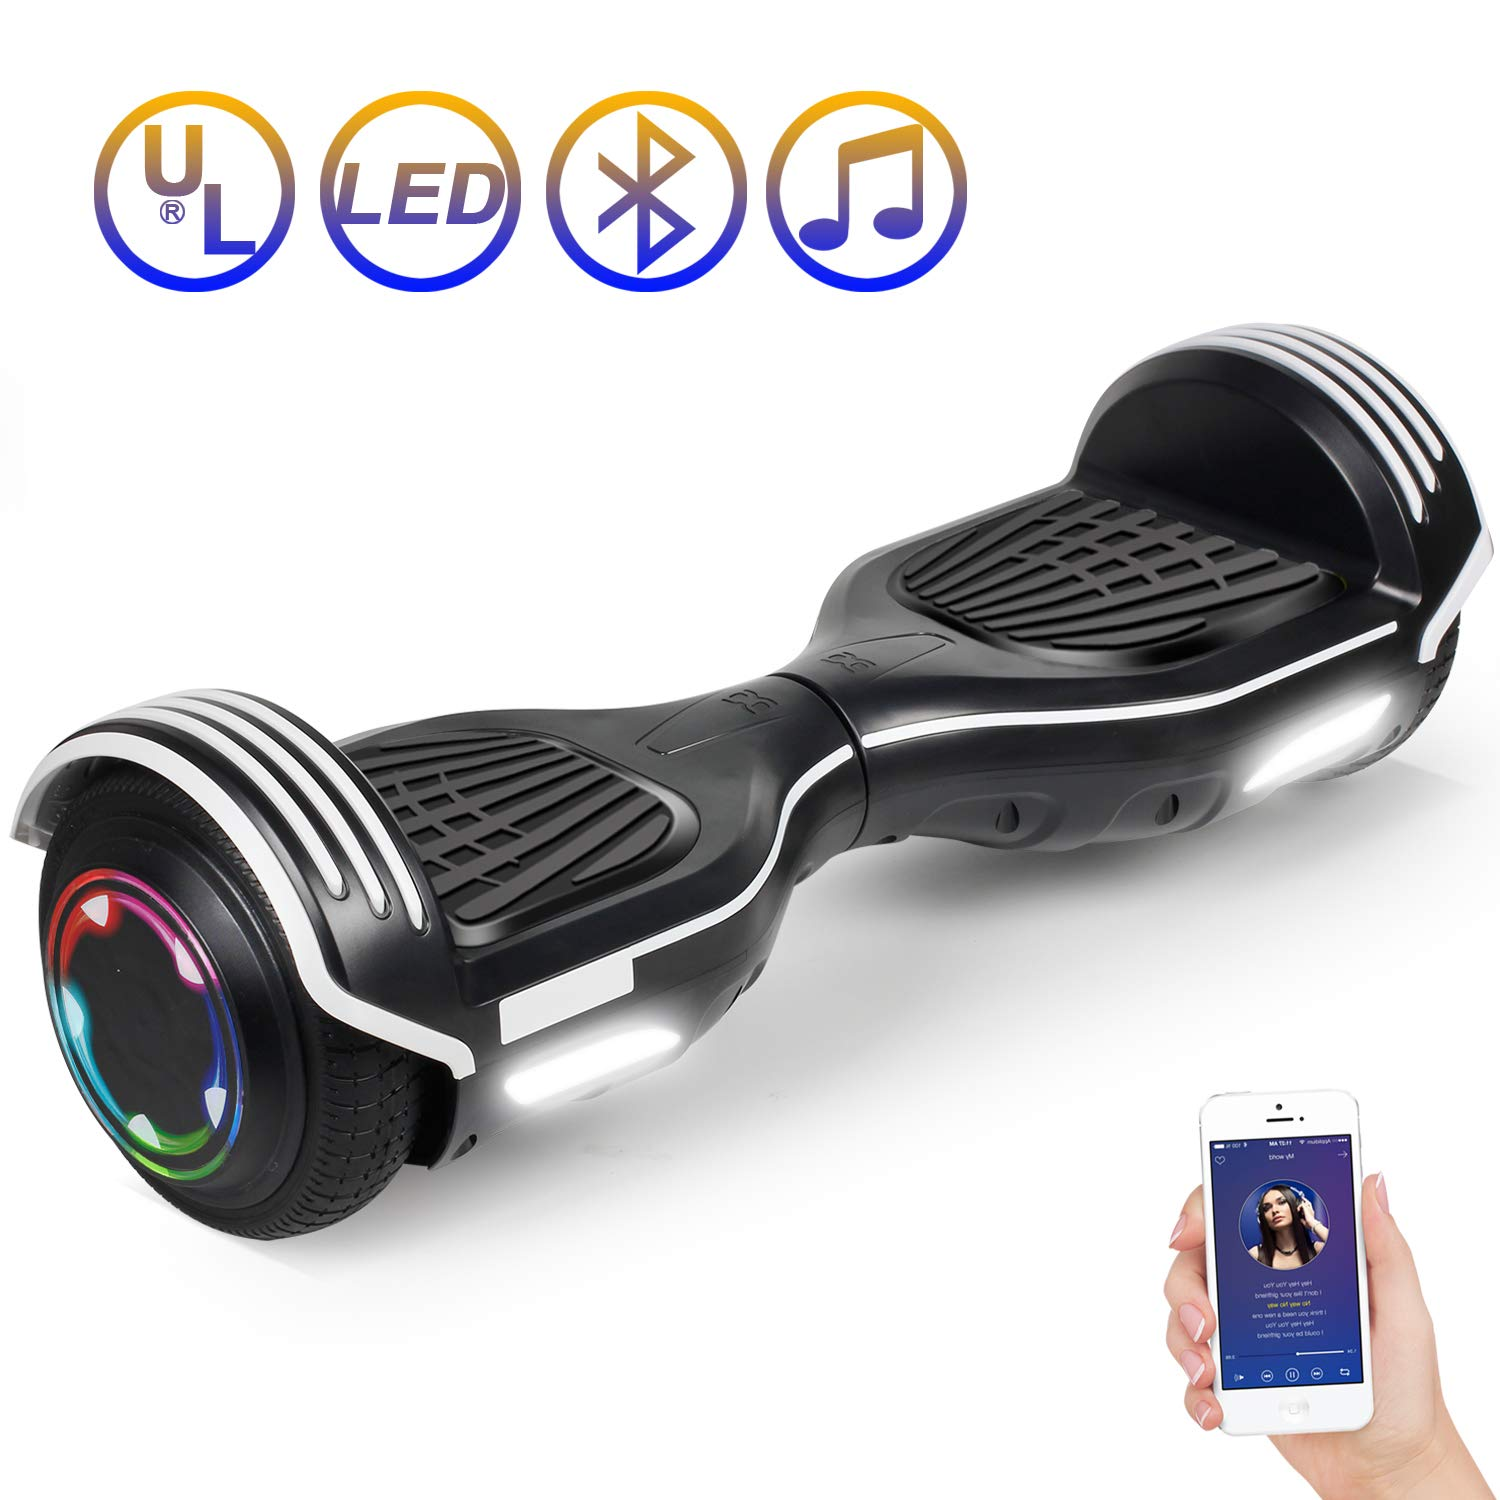 SISIGAD Hoverboard Self Balancing Scooter 6.5'' Two-Wheel Self Balancing Hoverboard with Bluetooth Speaker Electric Scooter for Adult Kids Gift UL 2272 Certified 138A Series - Black